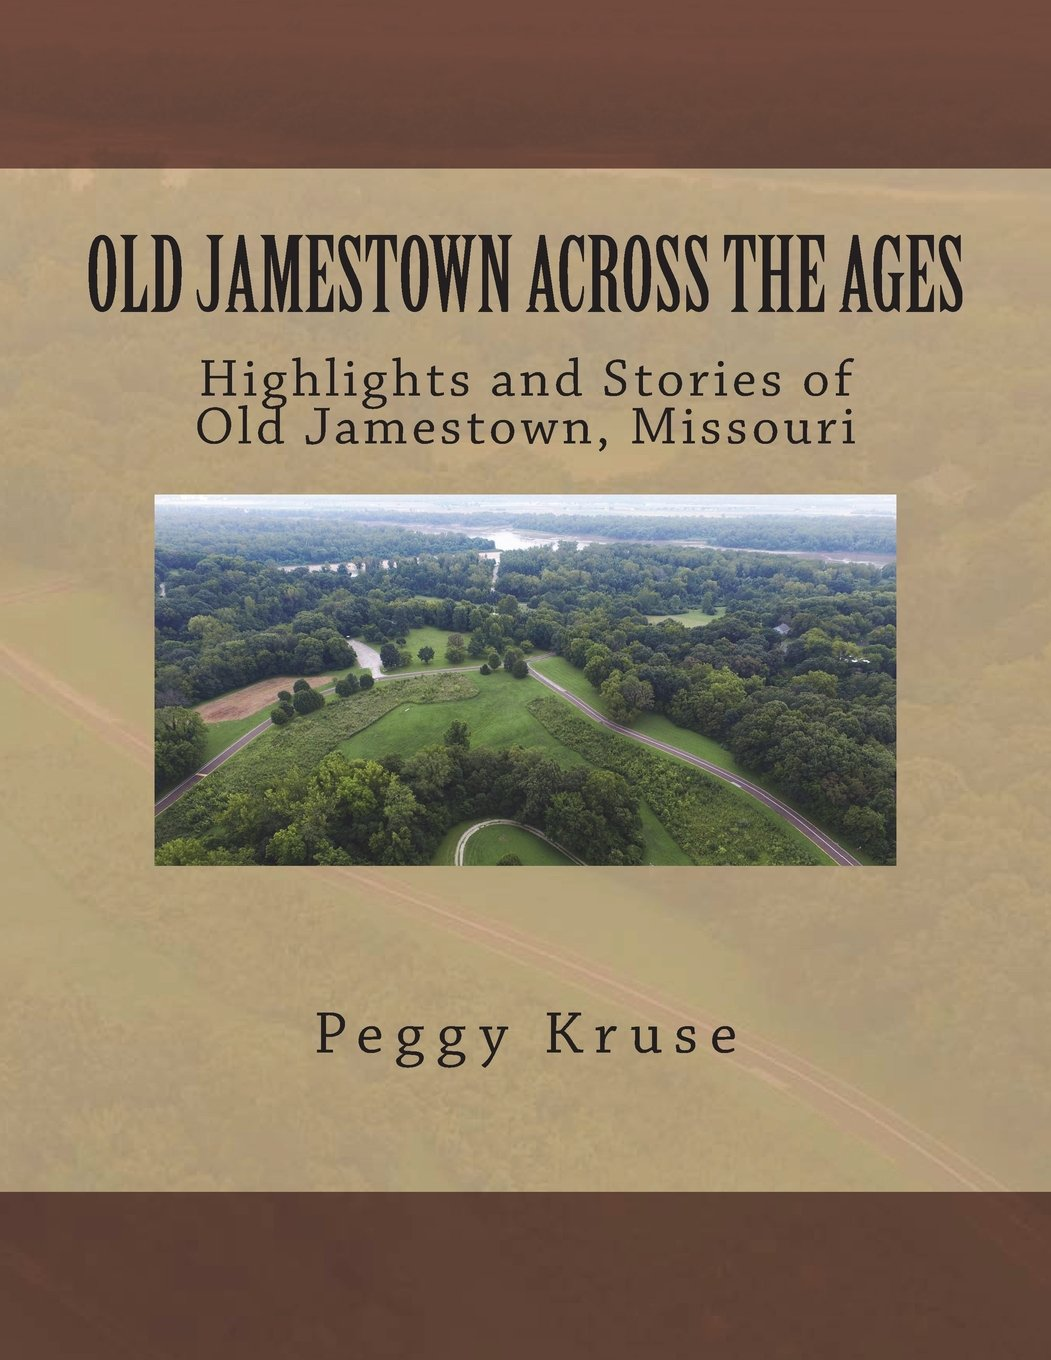 Old Jamestown Across the Ages: Highlights and Stories of Old Jamestown, Missouri PDF ePub fb2 ebook